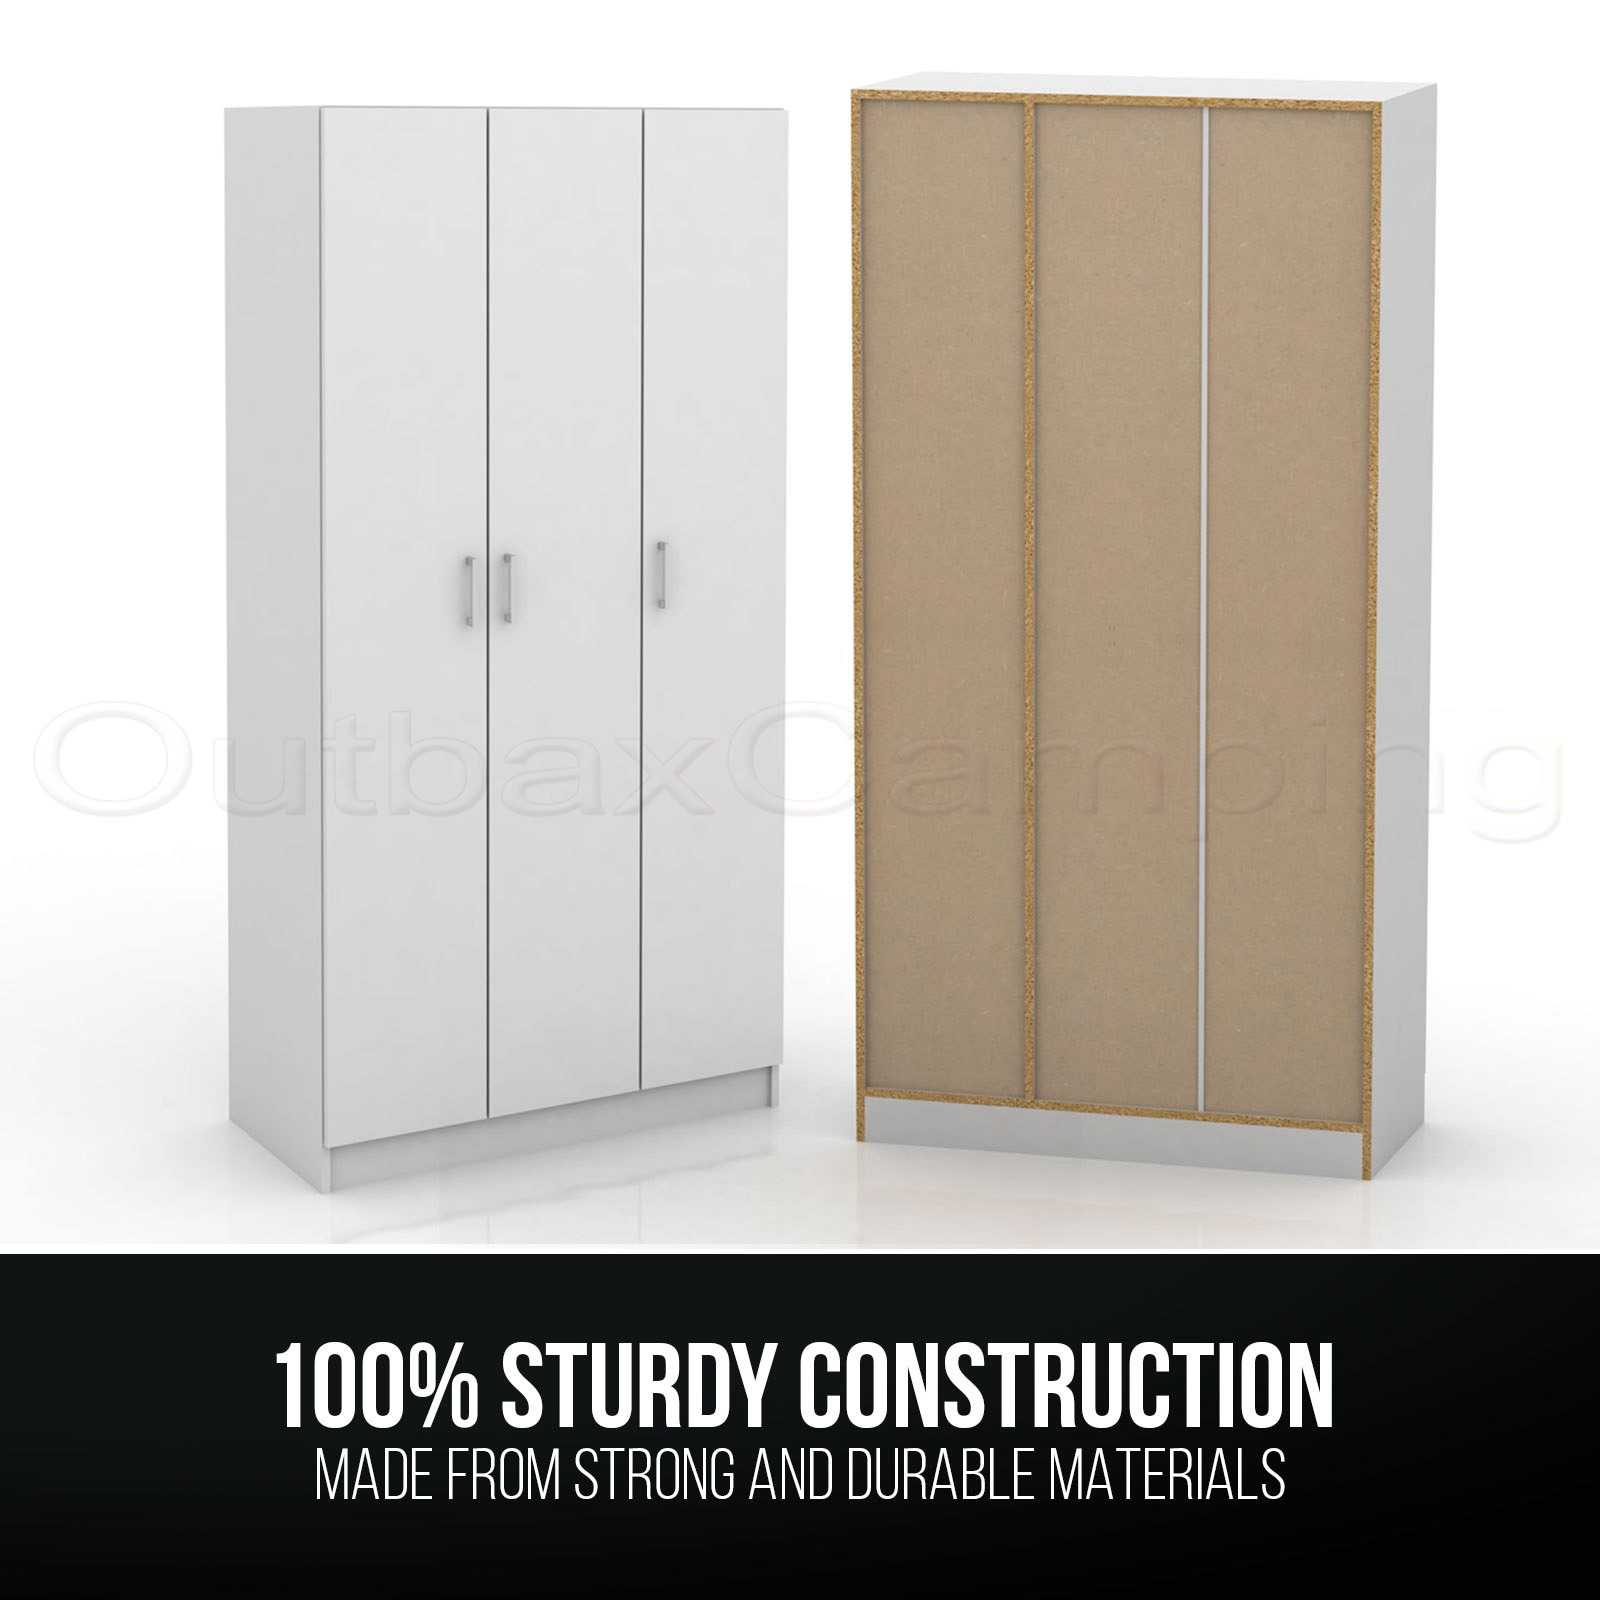 White 3 door bedroom wardrobe closet shelves rails shelf for One day doors and closets reviews